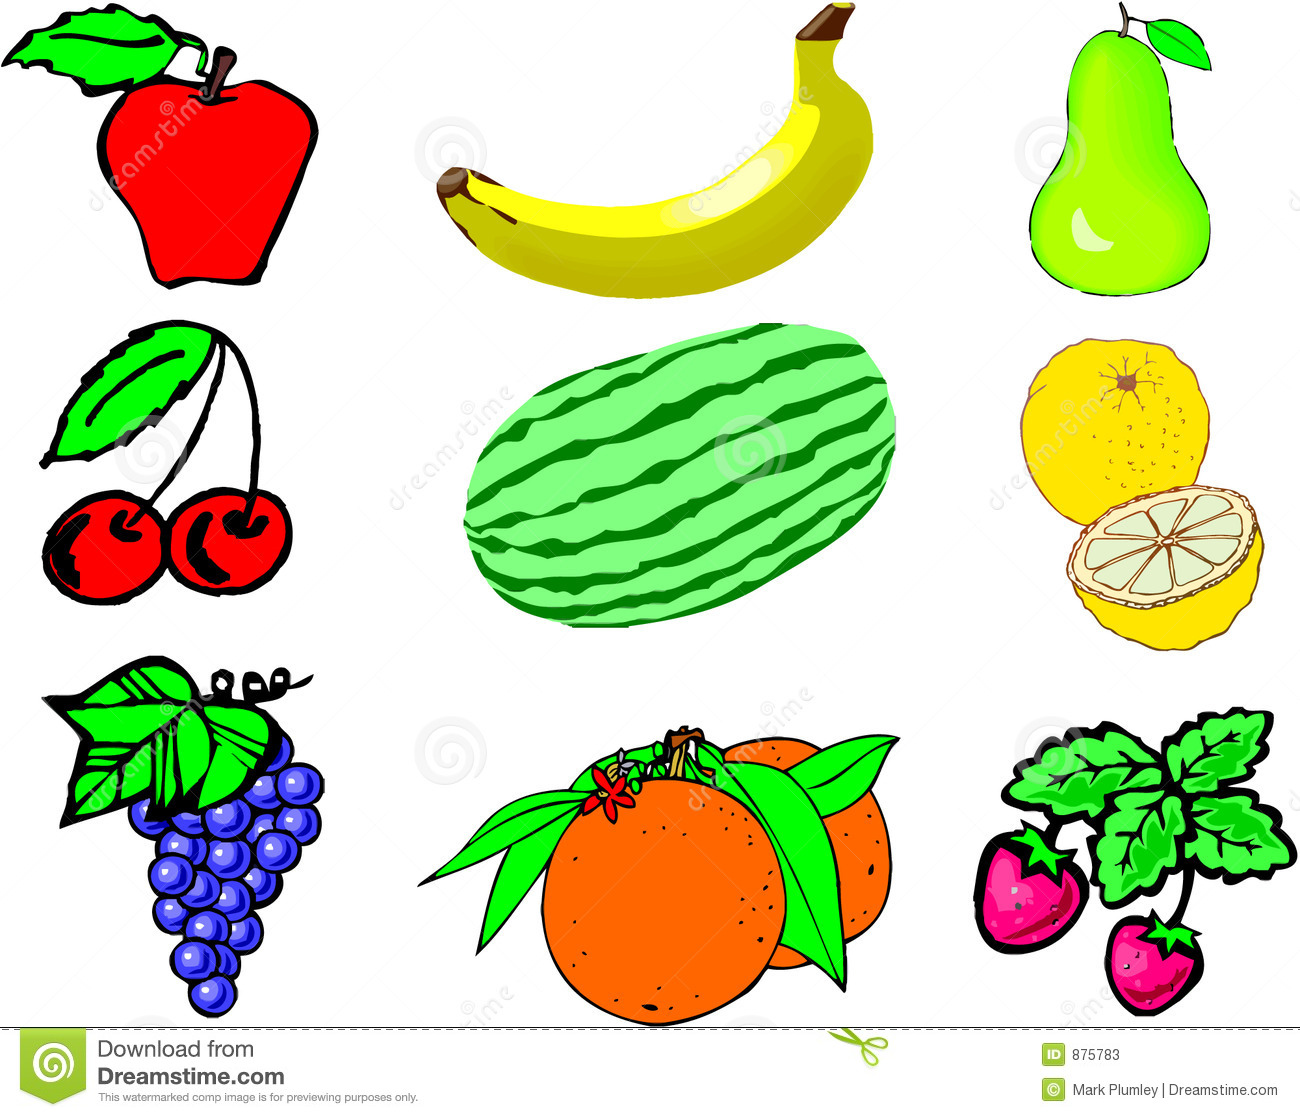 fruit and vegetable clipart clipart panda free clipart images rh clipartpanda com fruits and vegetables clipart png fruits and vegetables clipart images